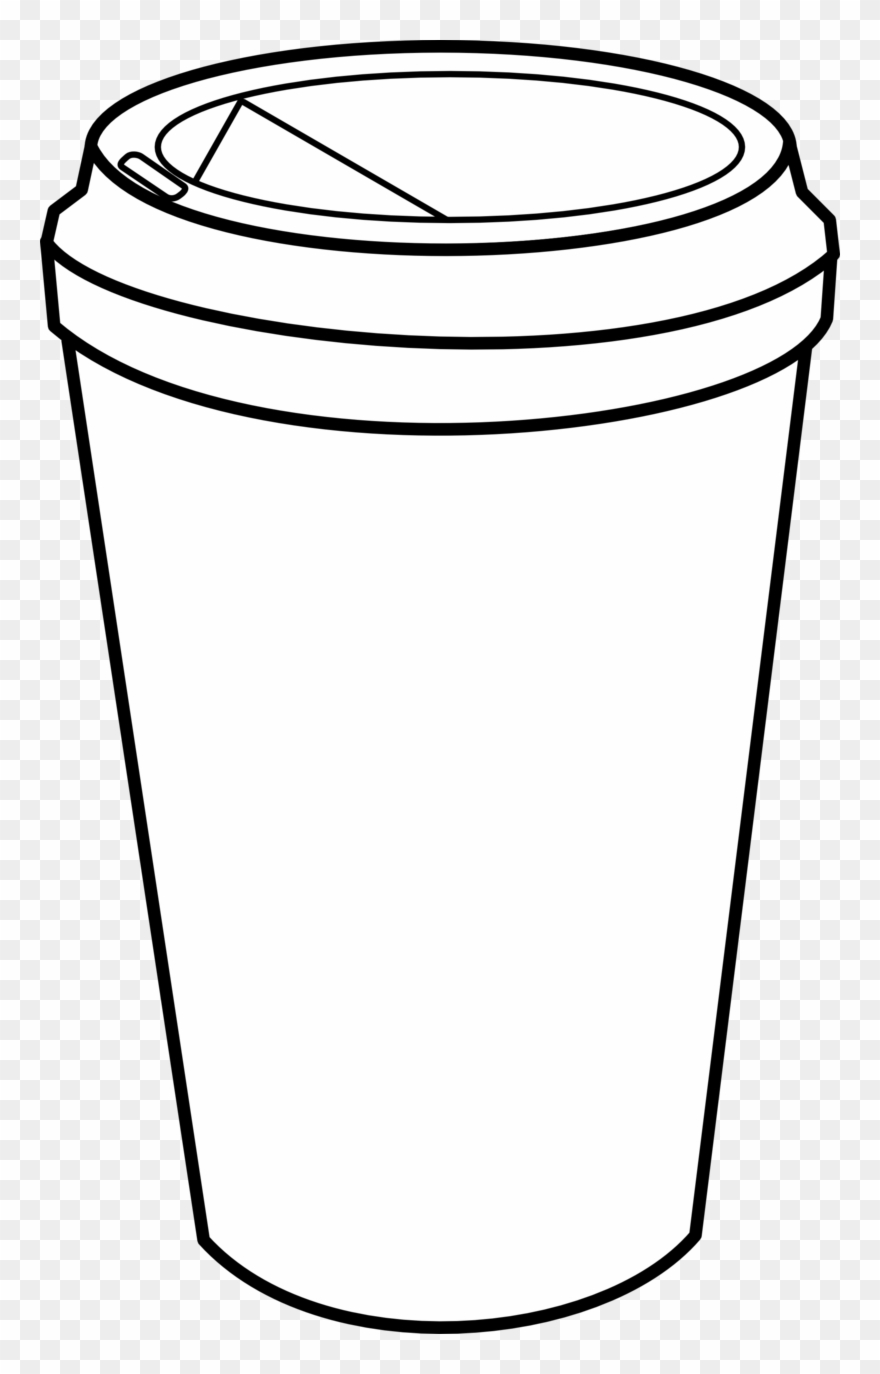 cup coloring page cups clipart tumbler cup cups tumbler cup transparent page cup coloring